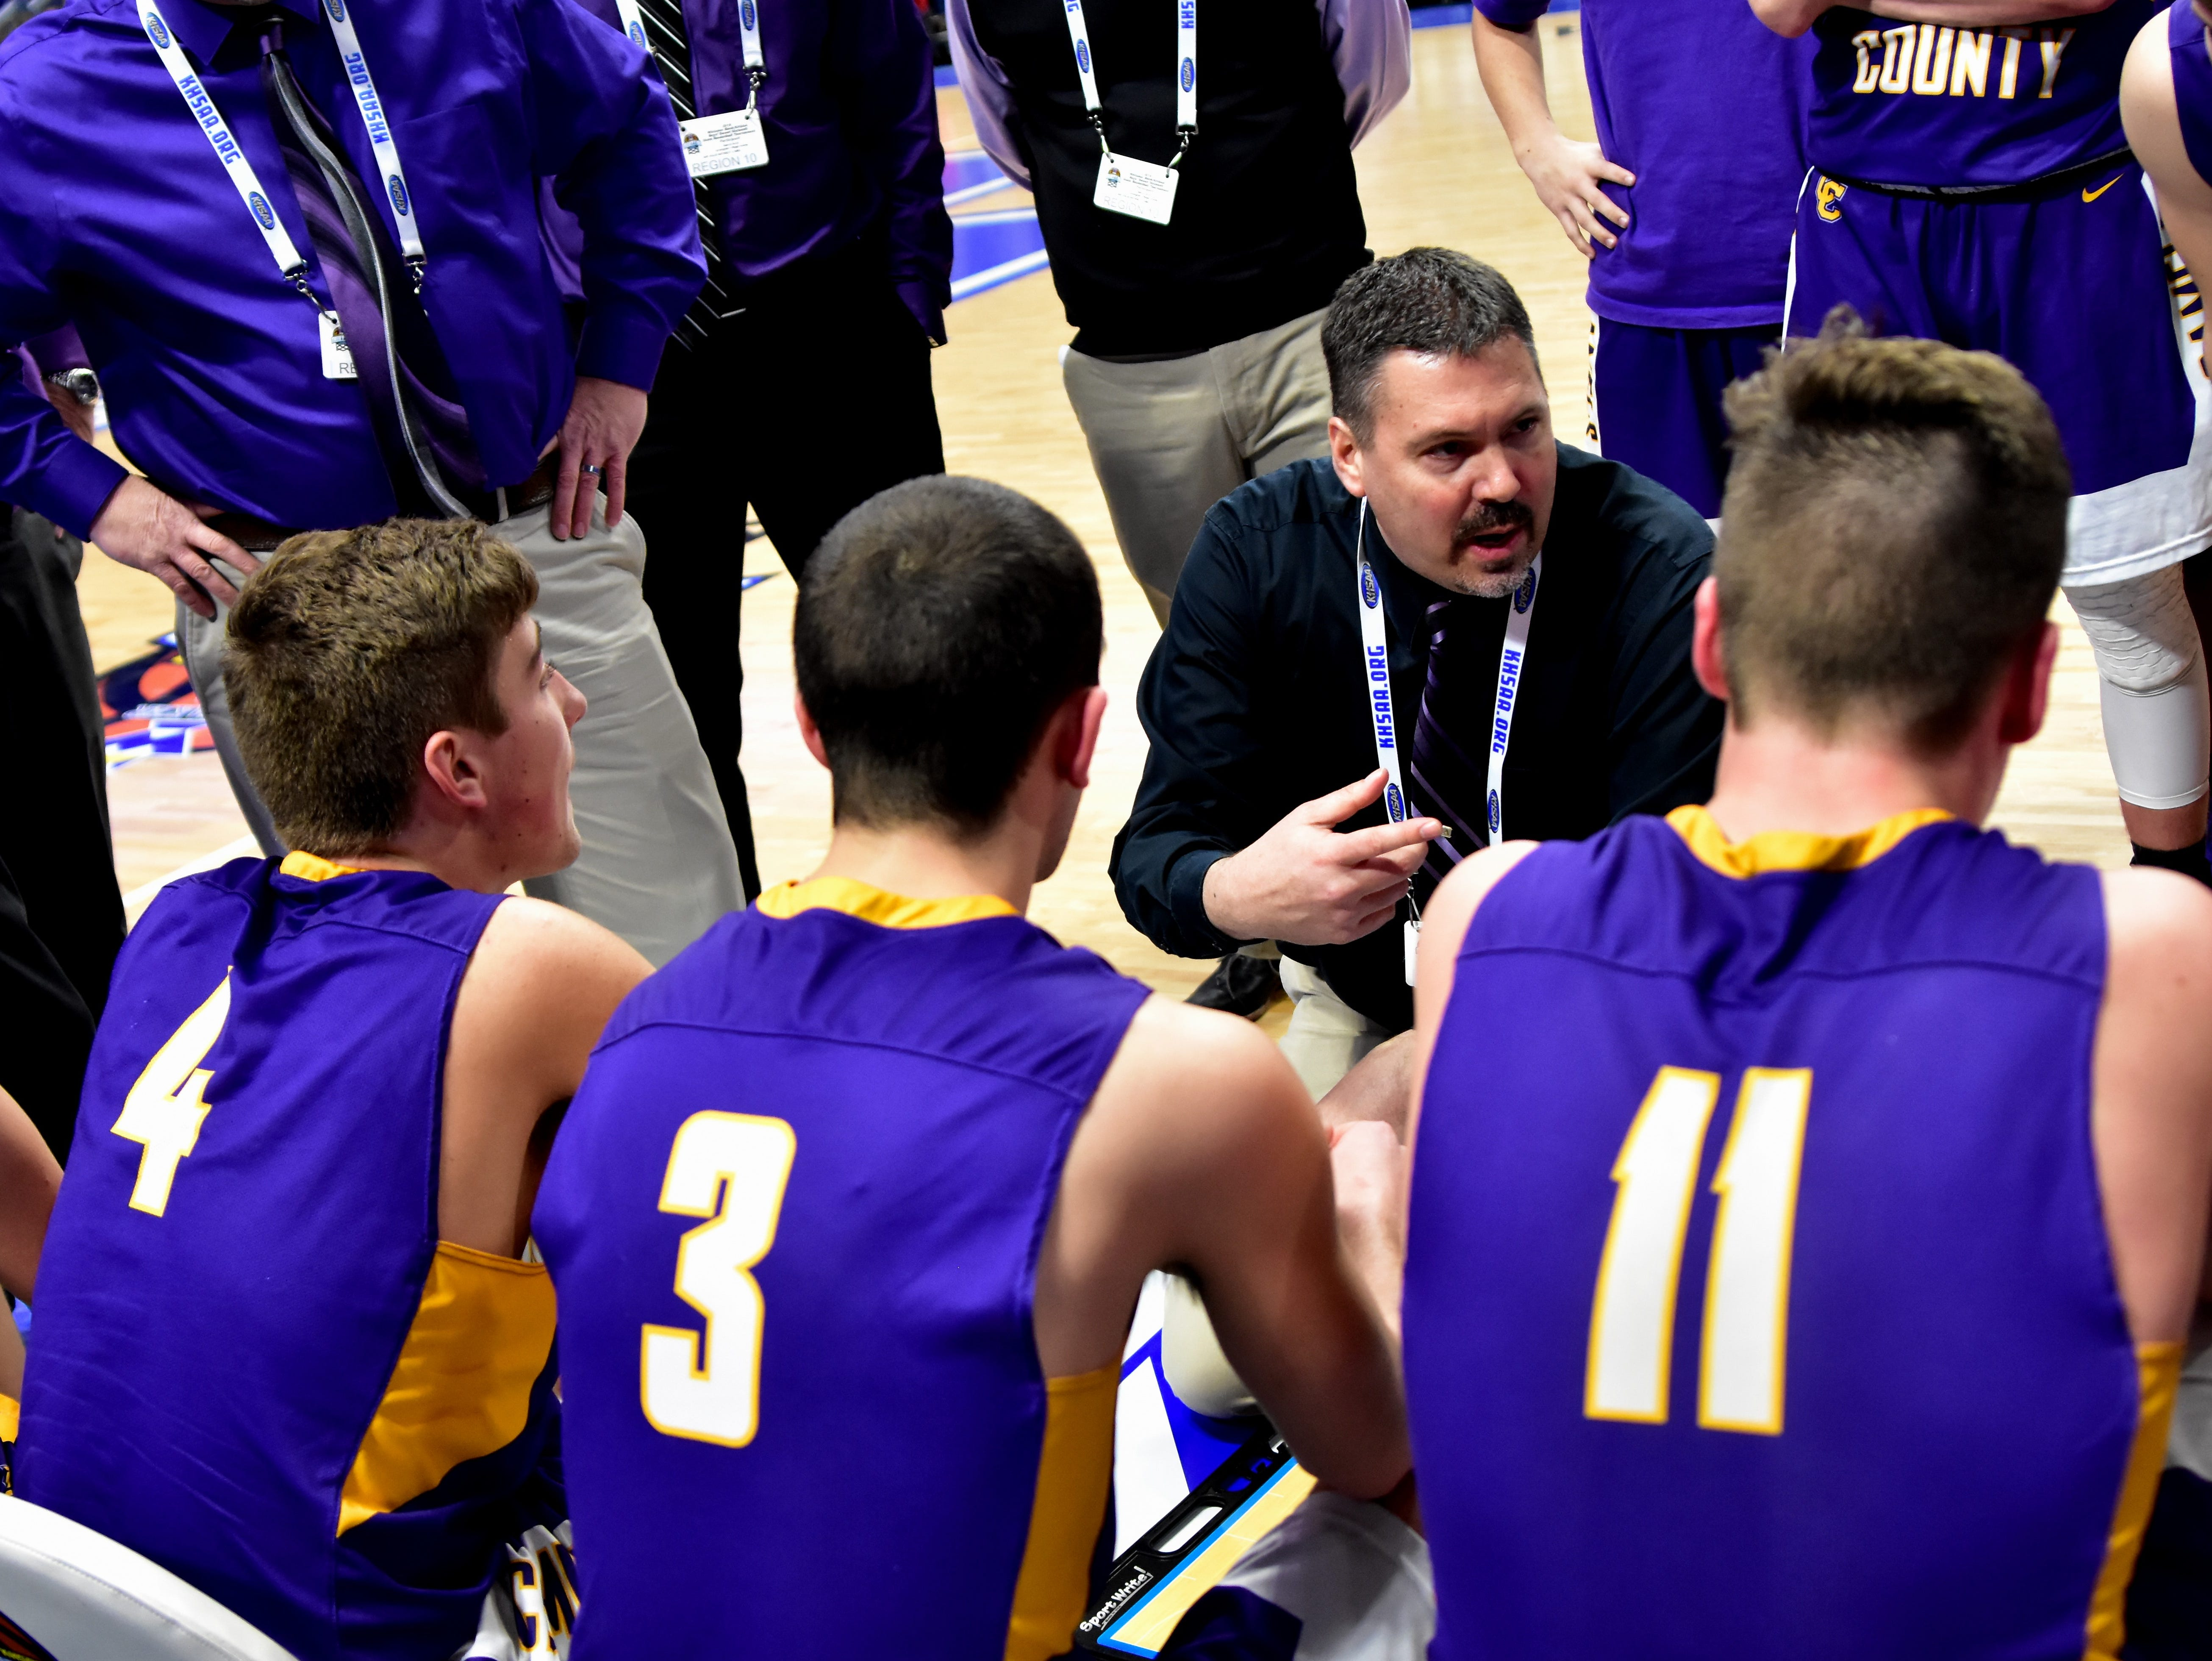 Coach Aric Russell goes over defensive strategy with his Campbell Coounty team during a time out at the KHSAA Sweet 16 Tournament at Rupp Arena in Lexington, KY, March 6, 2019